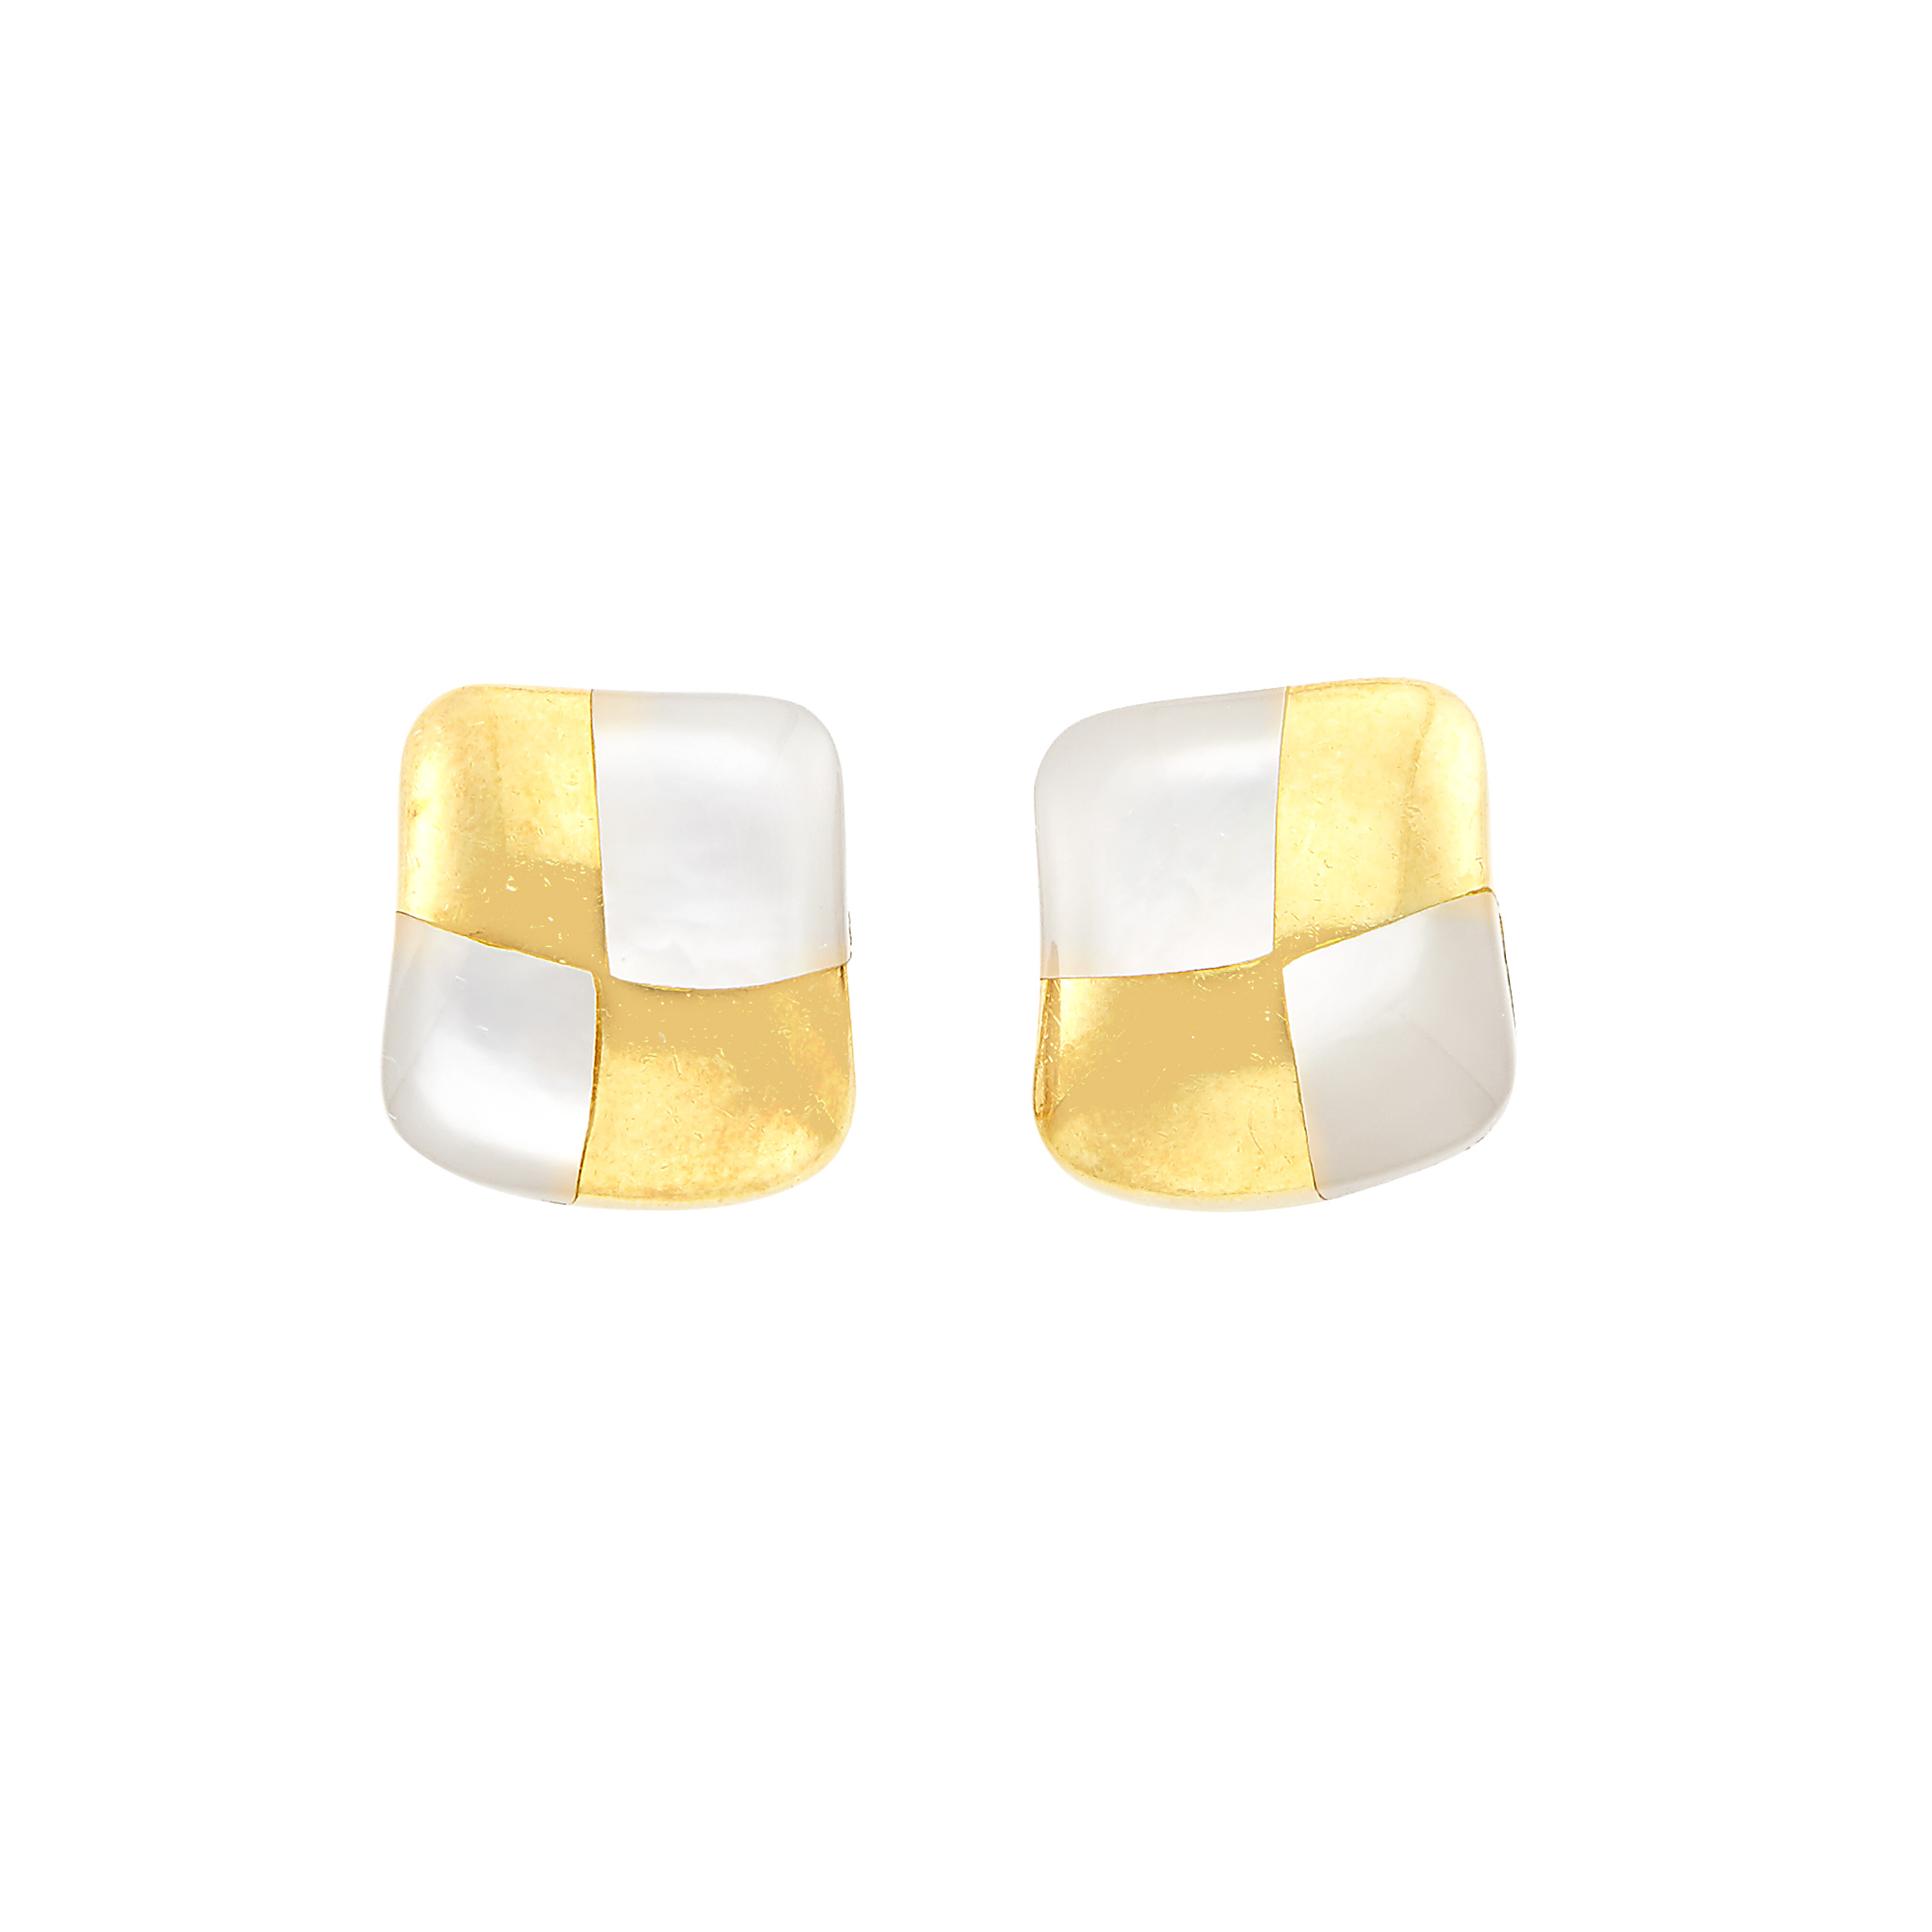 Lot image - Pair of Gold and Mother-of-Pearl Earrings, Angela Cummings